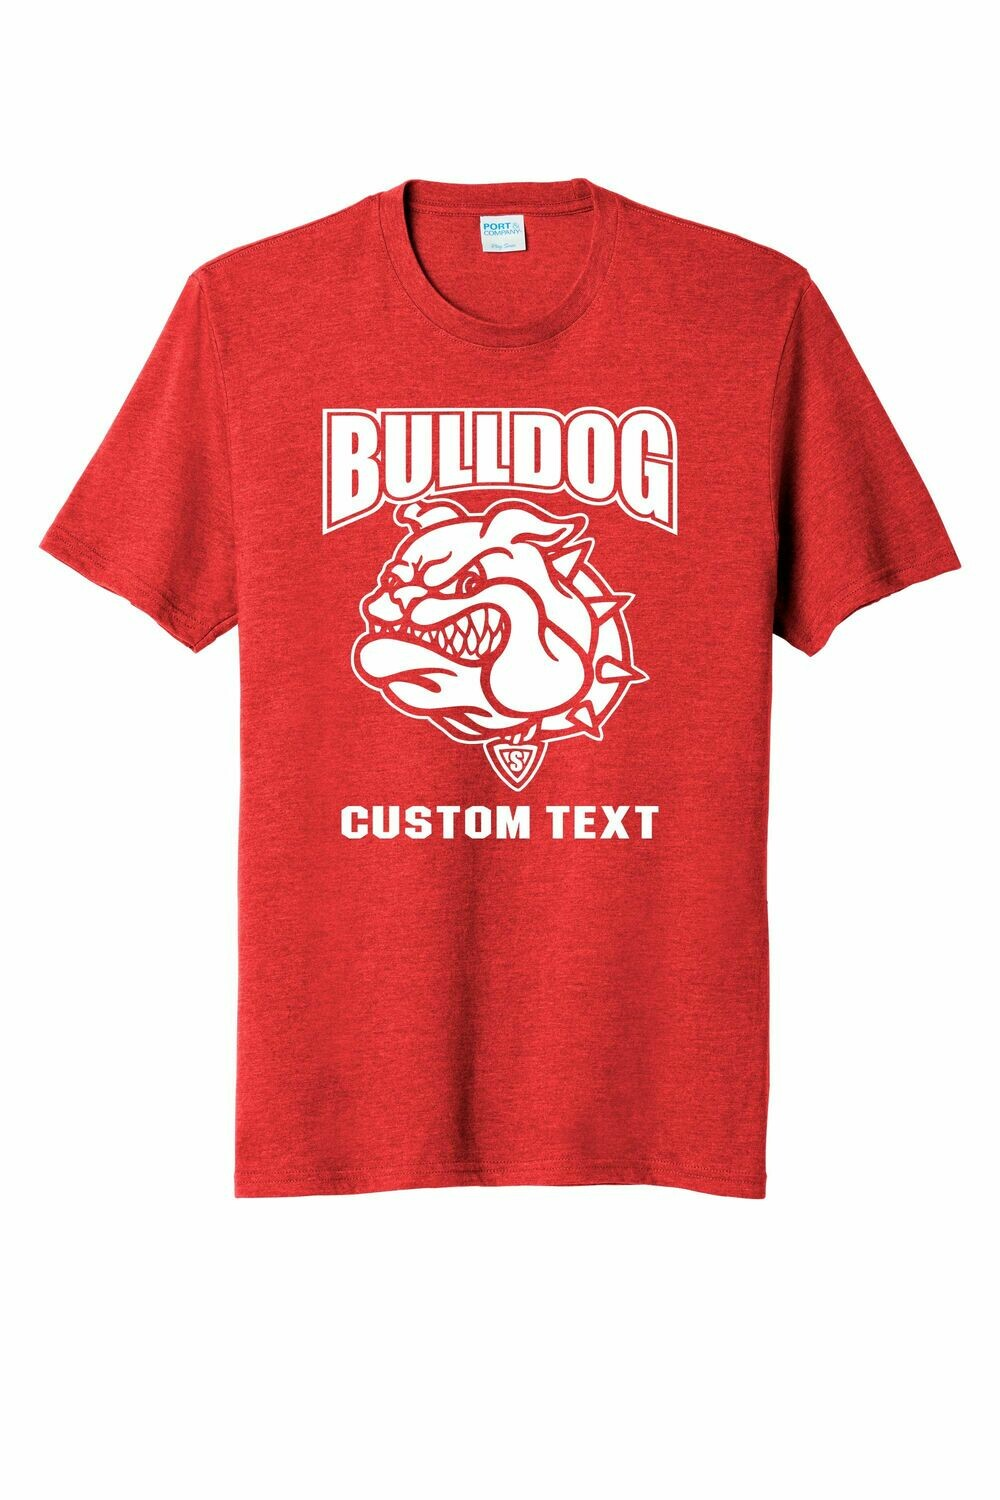 Bulldog Adult Soft Tee